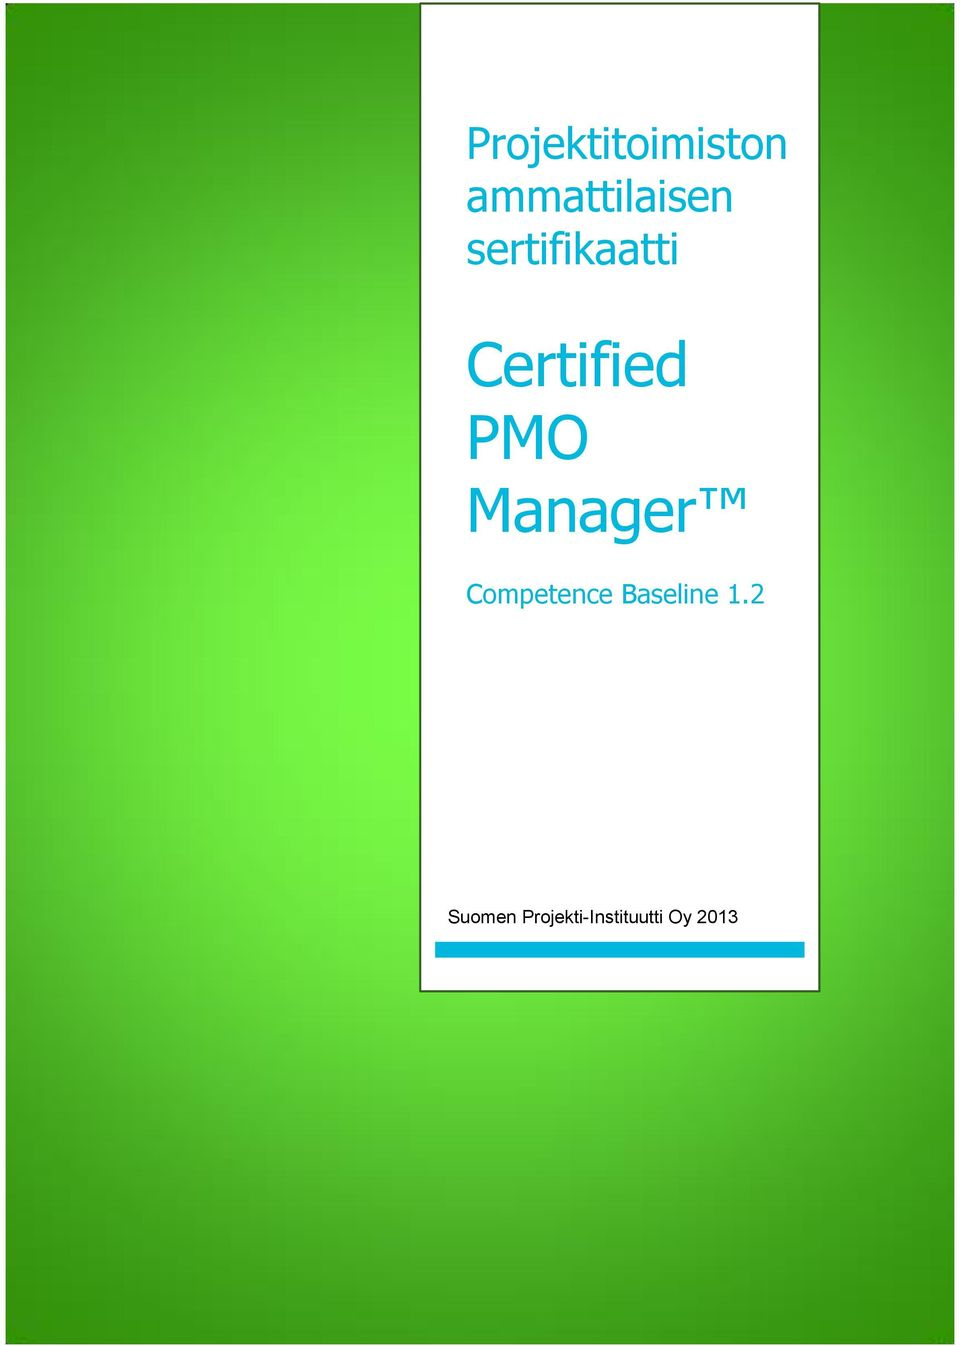 Manager Competence Baseline 1.